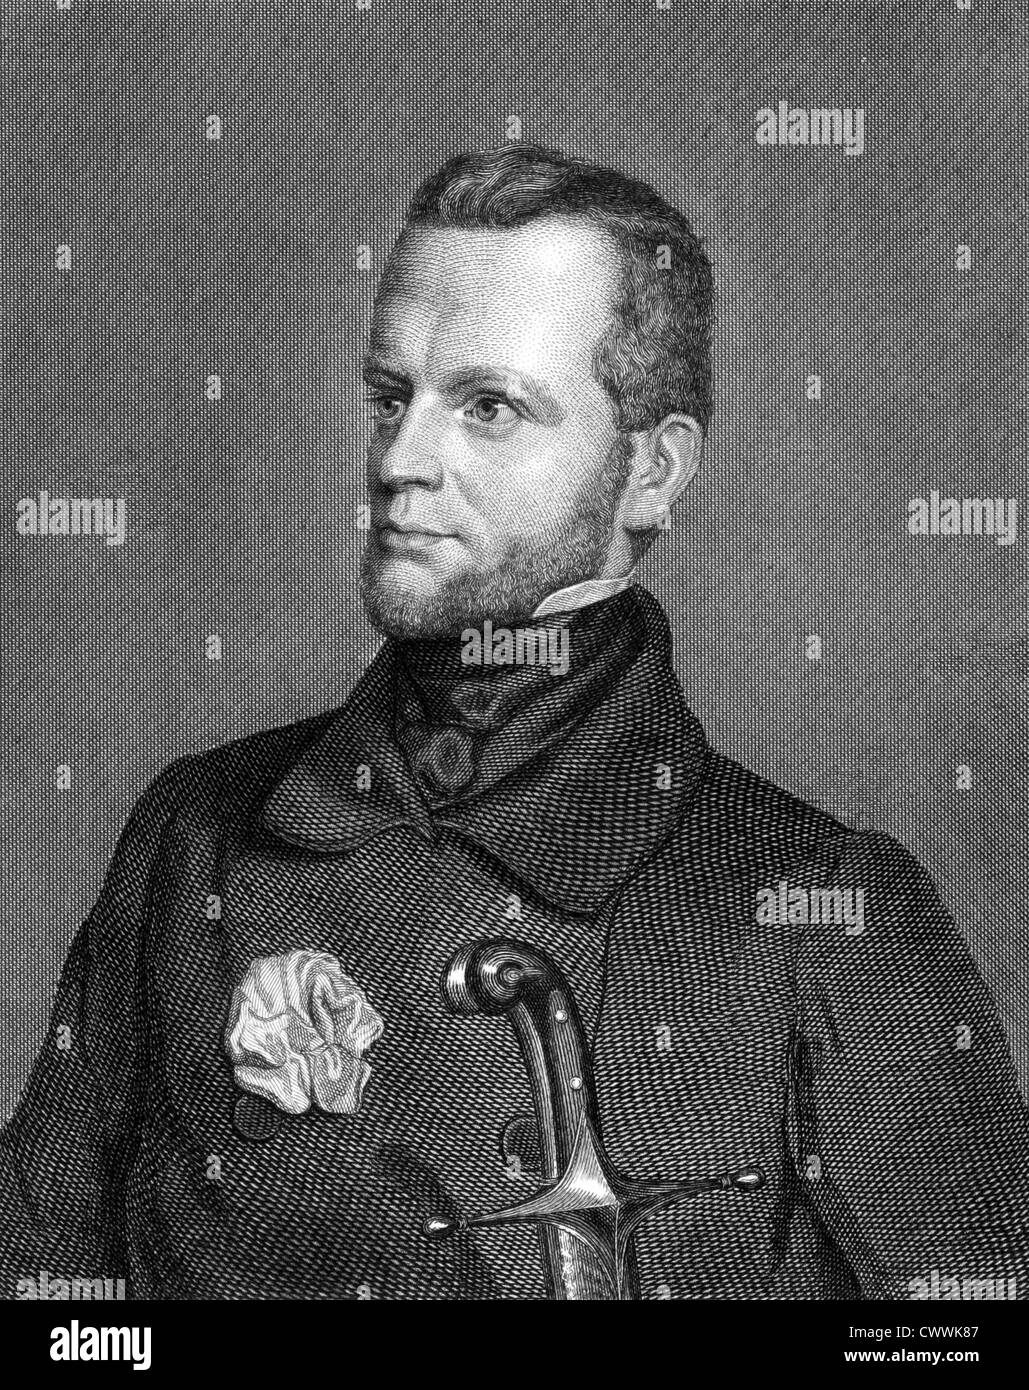 Carl Giskra (1820-1879) on engraving from 1859. Statesman of the Austrian Empire. - Stock Image